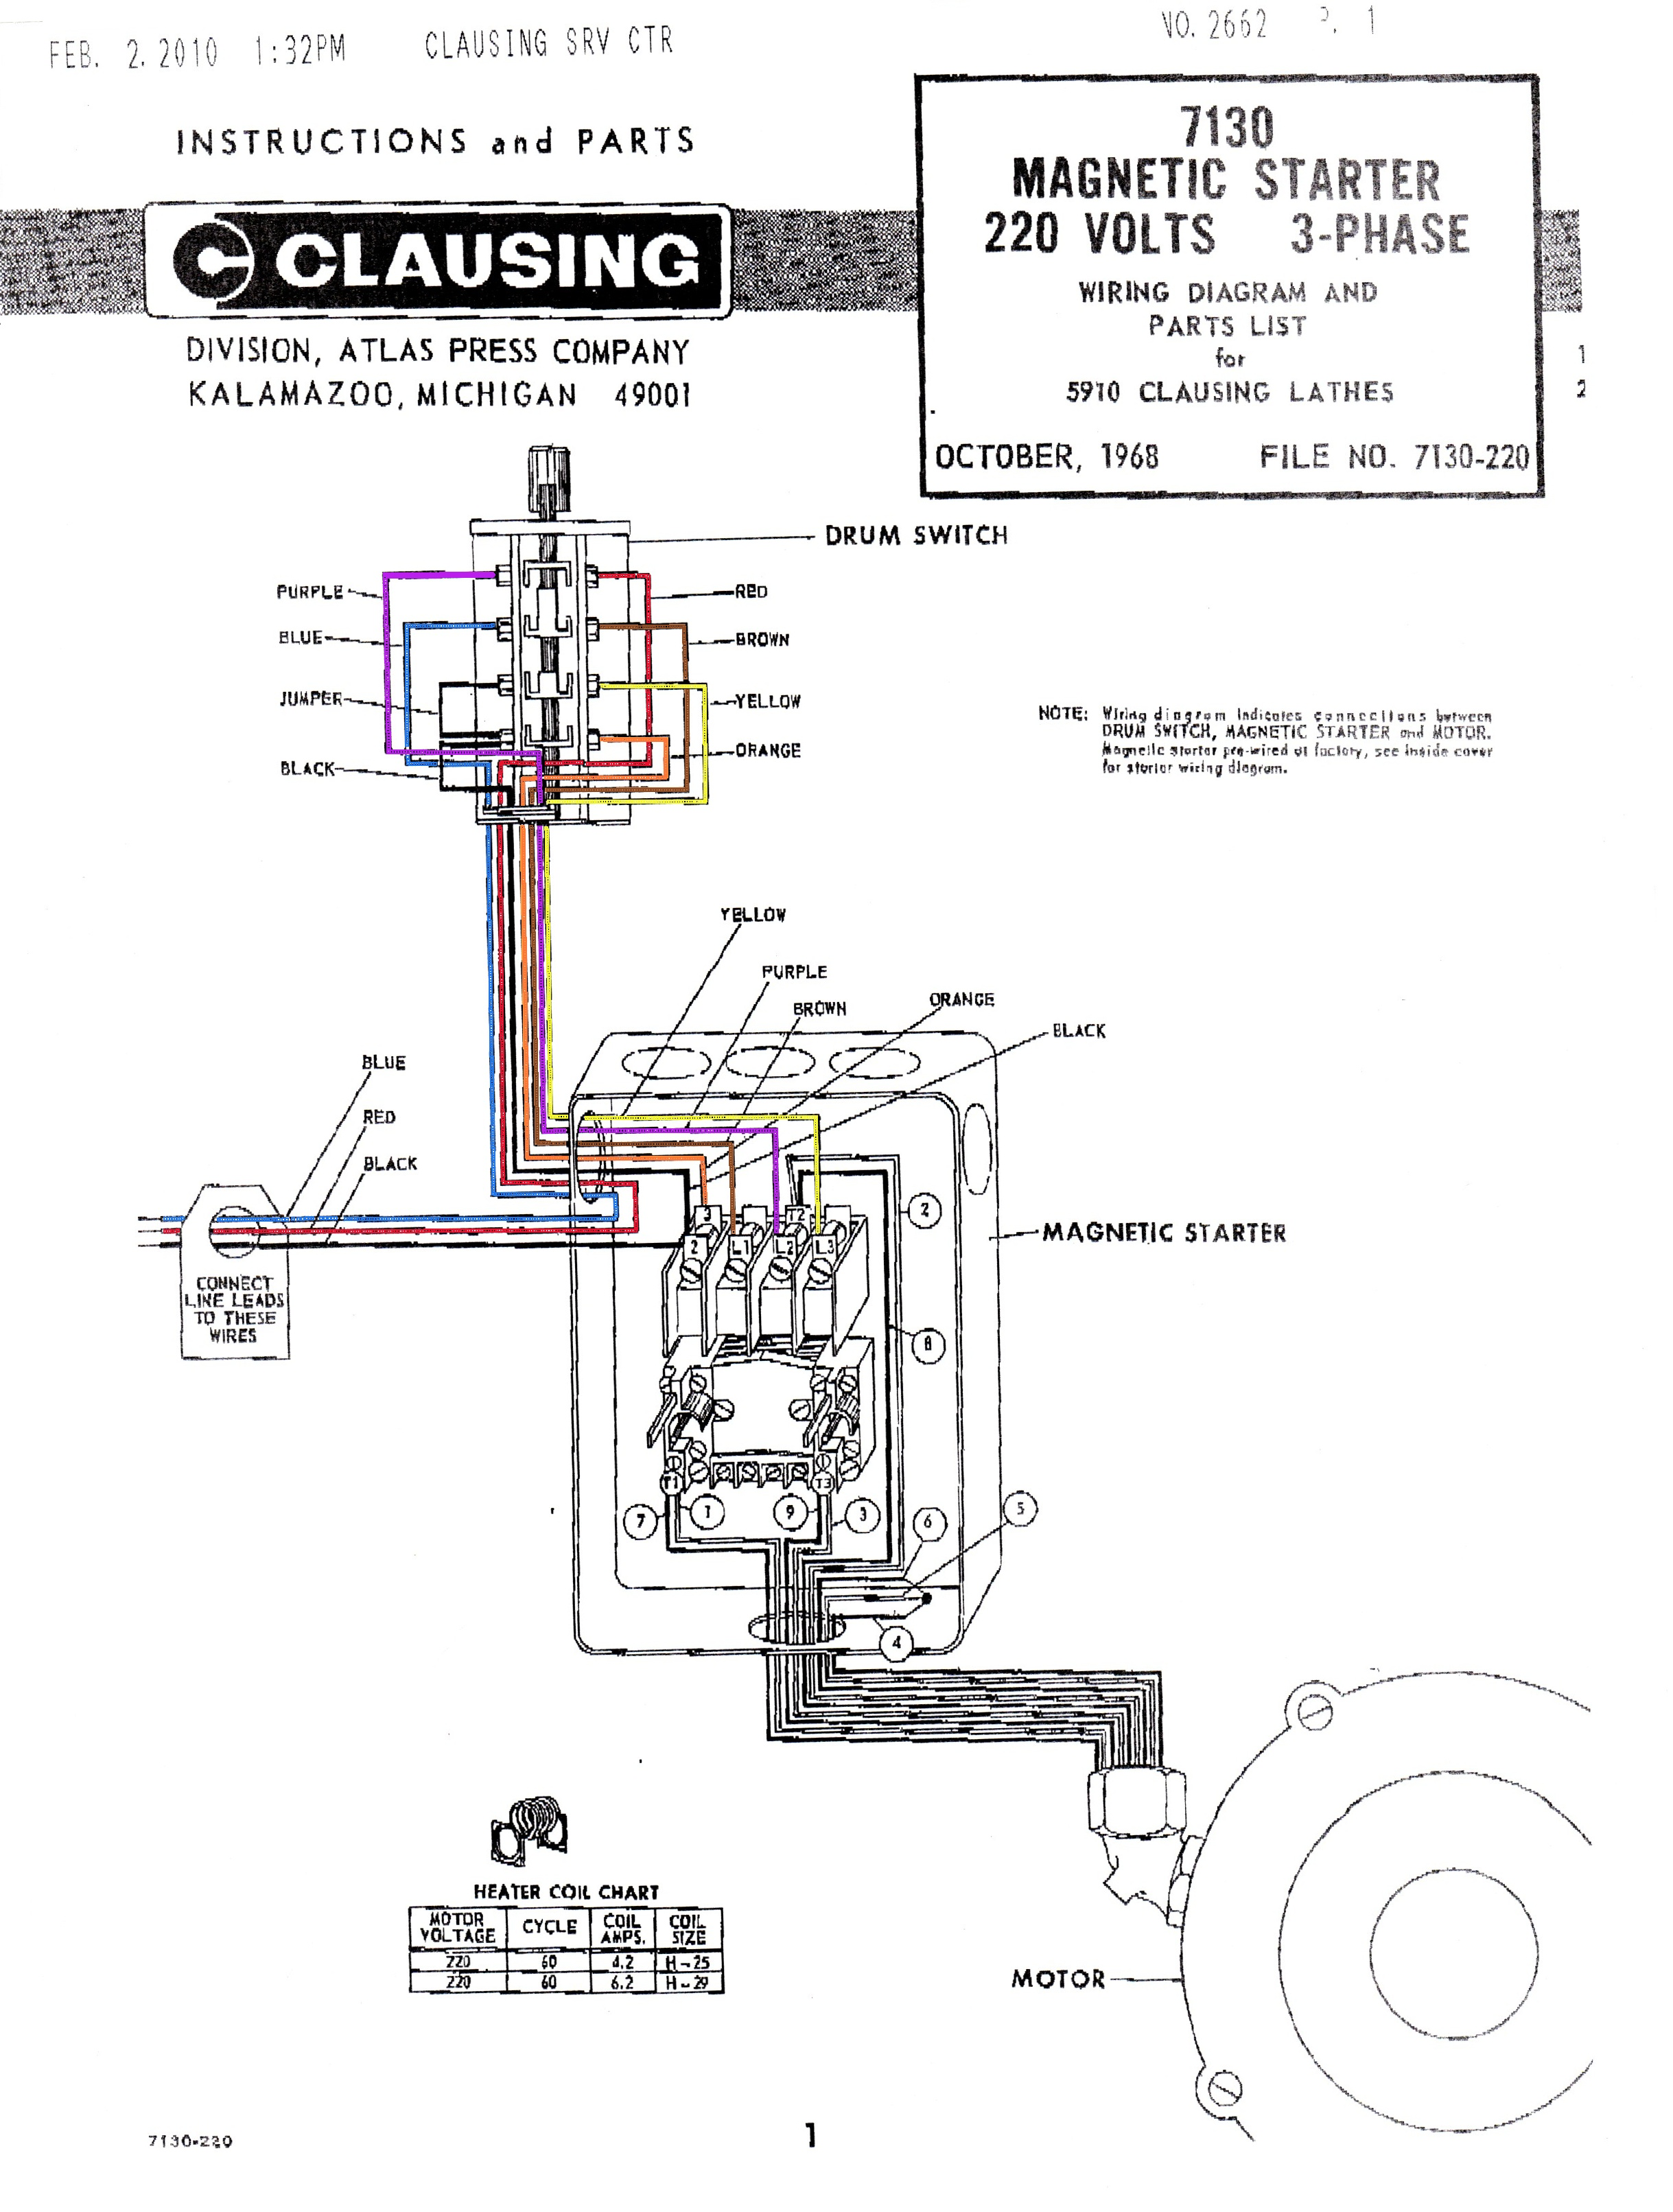 motor starter wiring diagram electric meter box 3 phase relay allen bradley